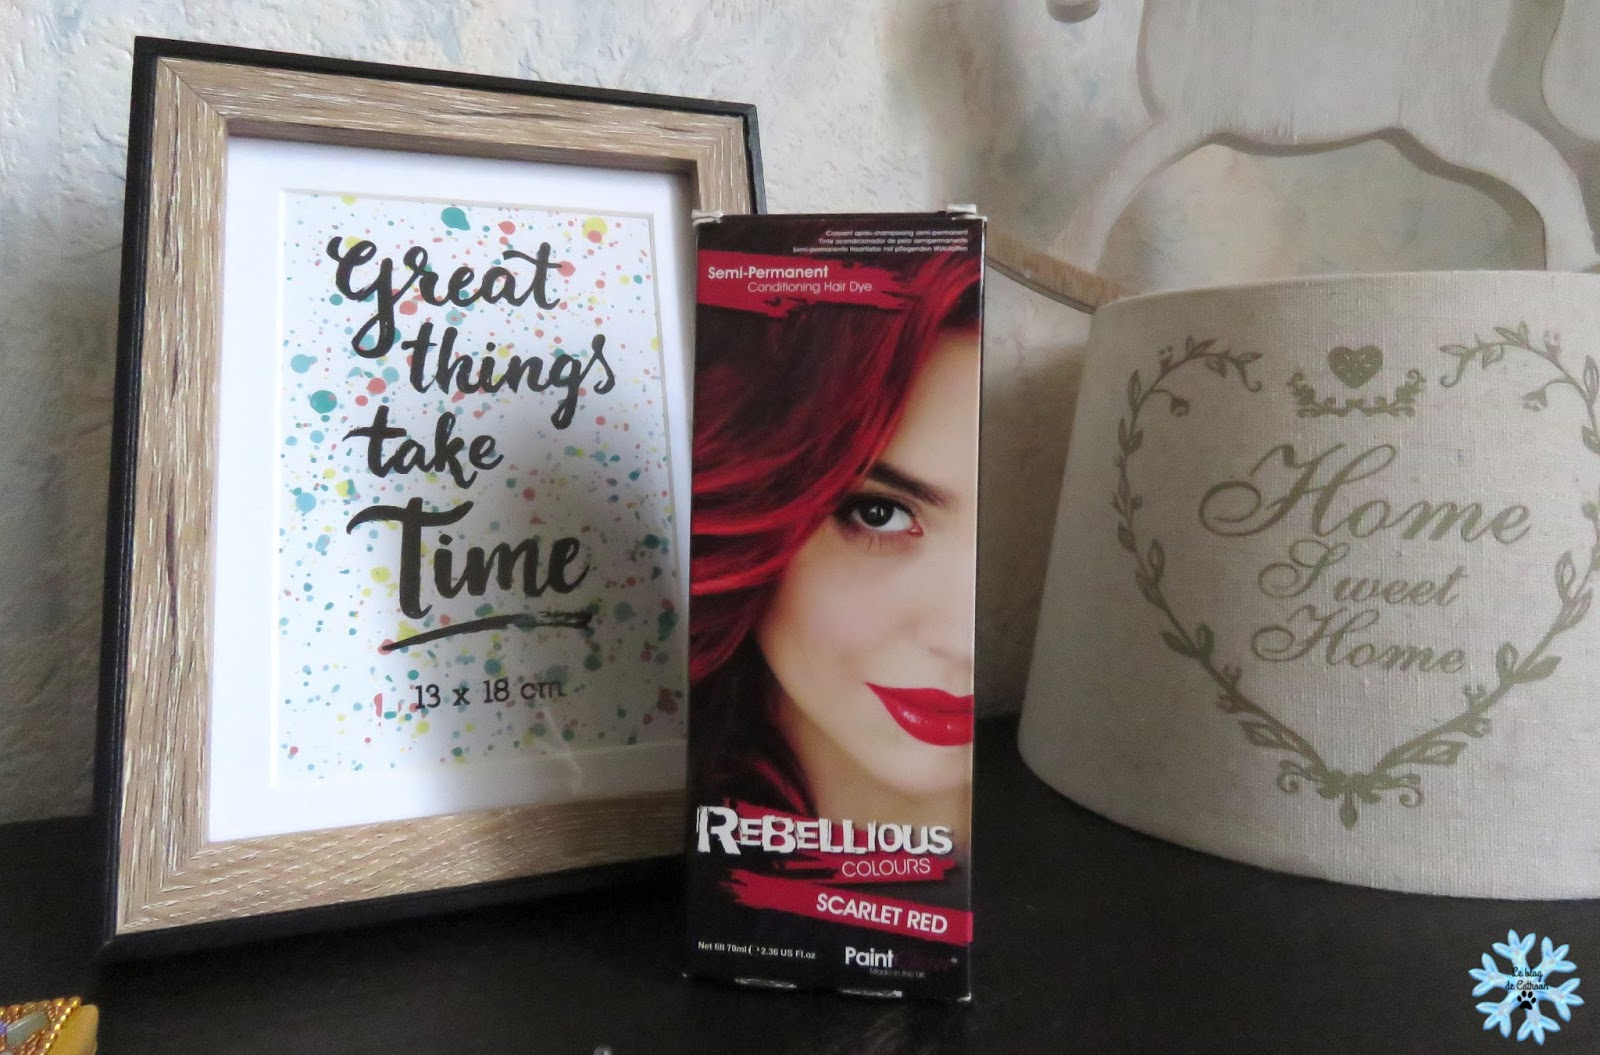 Rebellious Color couleur Scarlet Red